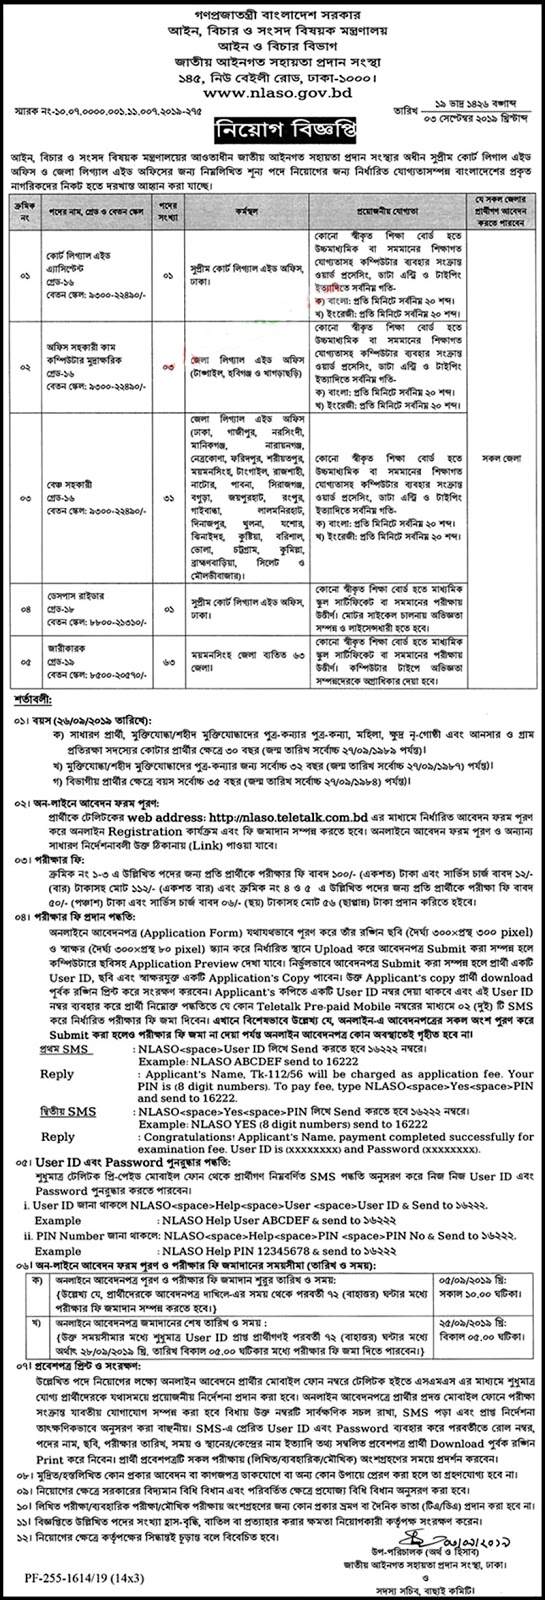 National Legal Aid Services Organization (NLASO) Job Circular 2019